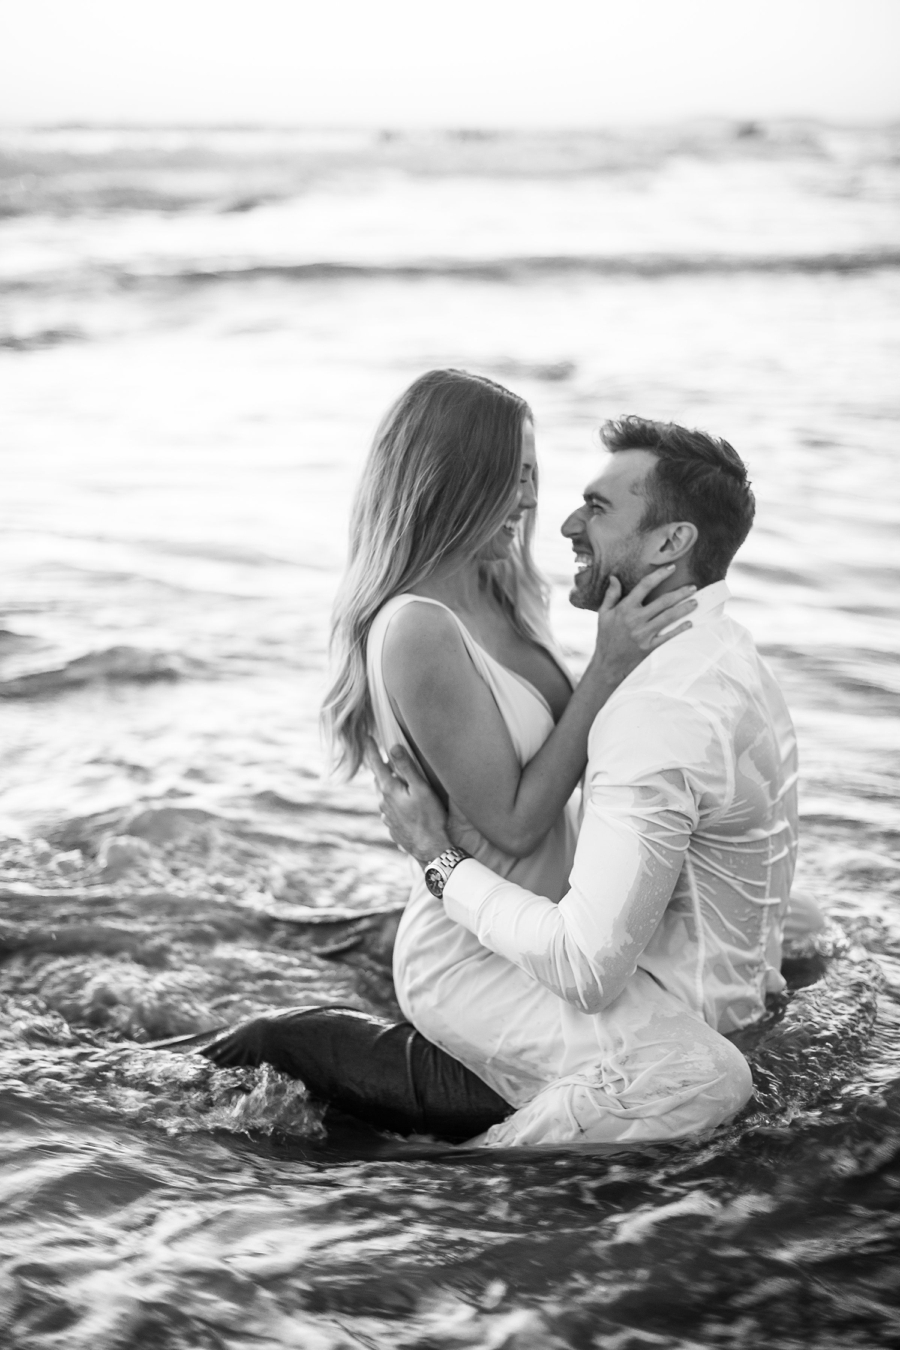 taylor_kinzie_photography_los_angeles_wedding_photographer_beach_engagement_session_0039